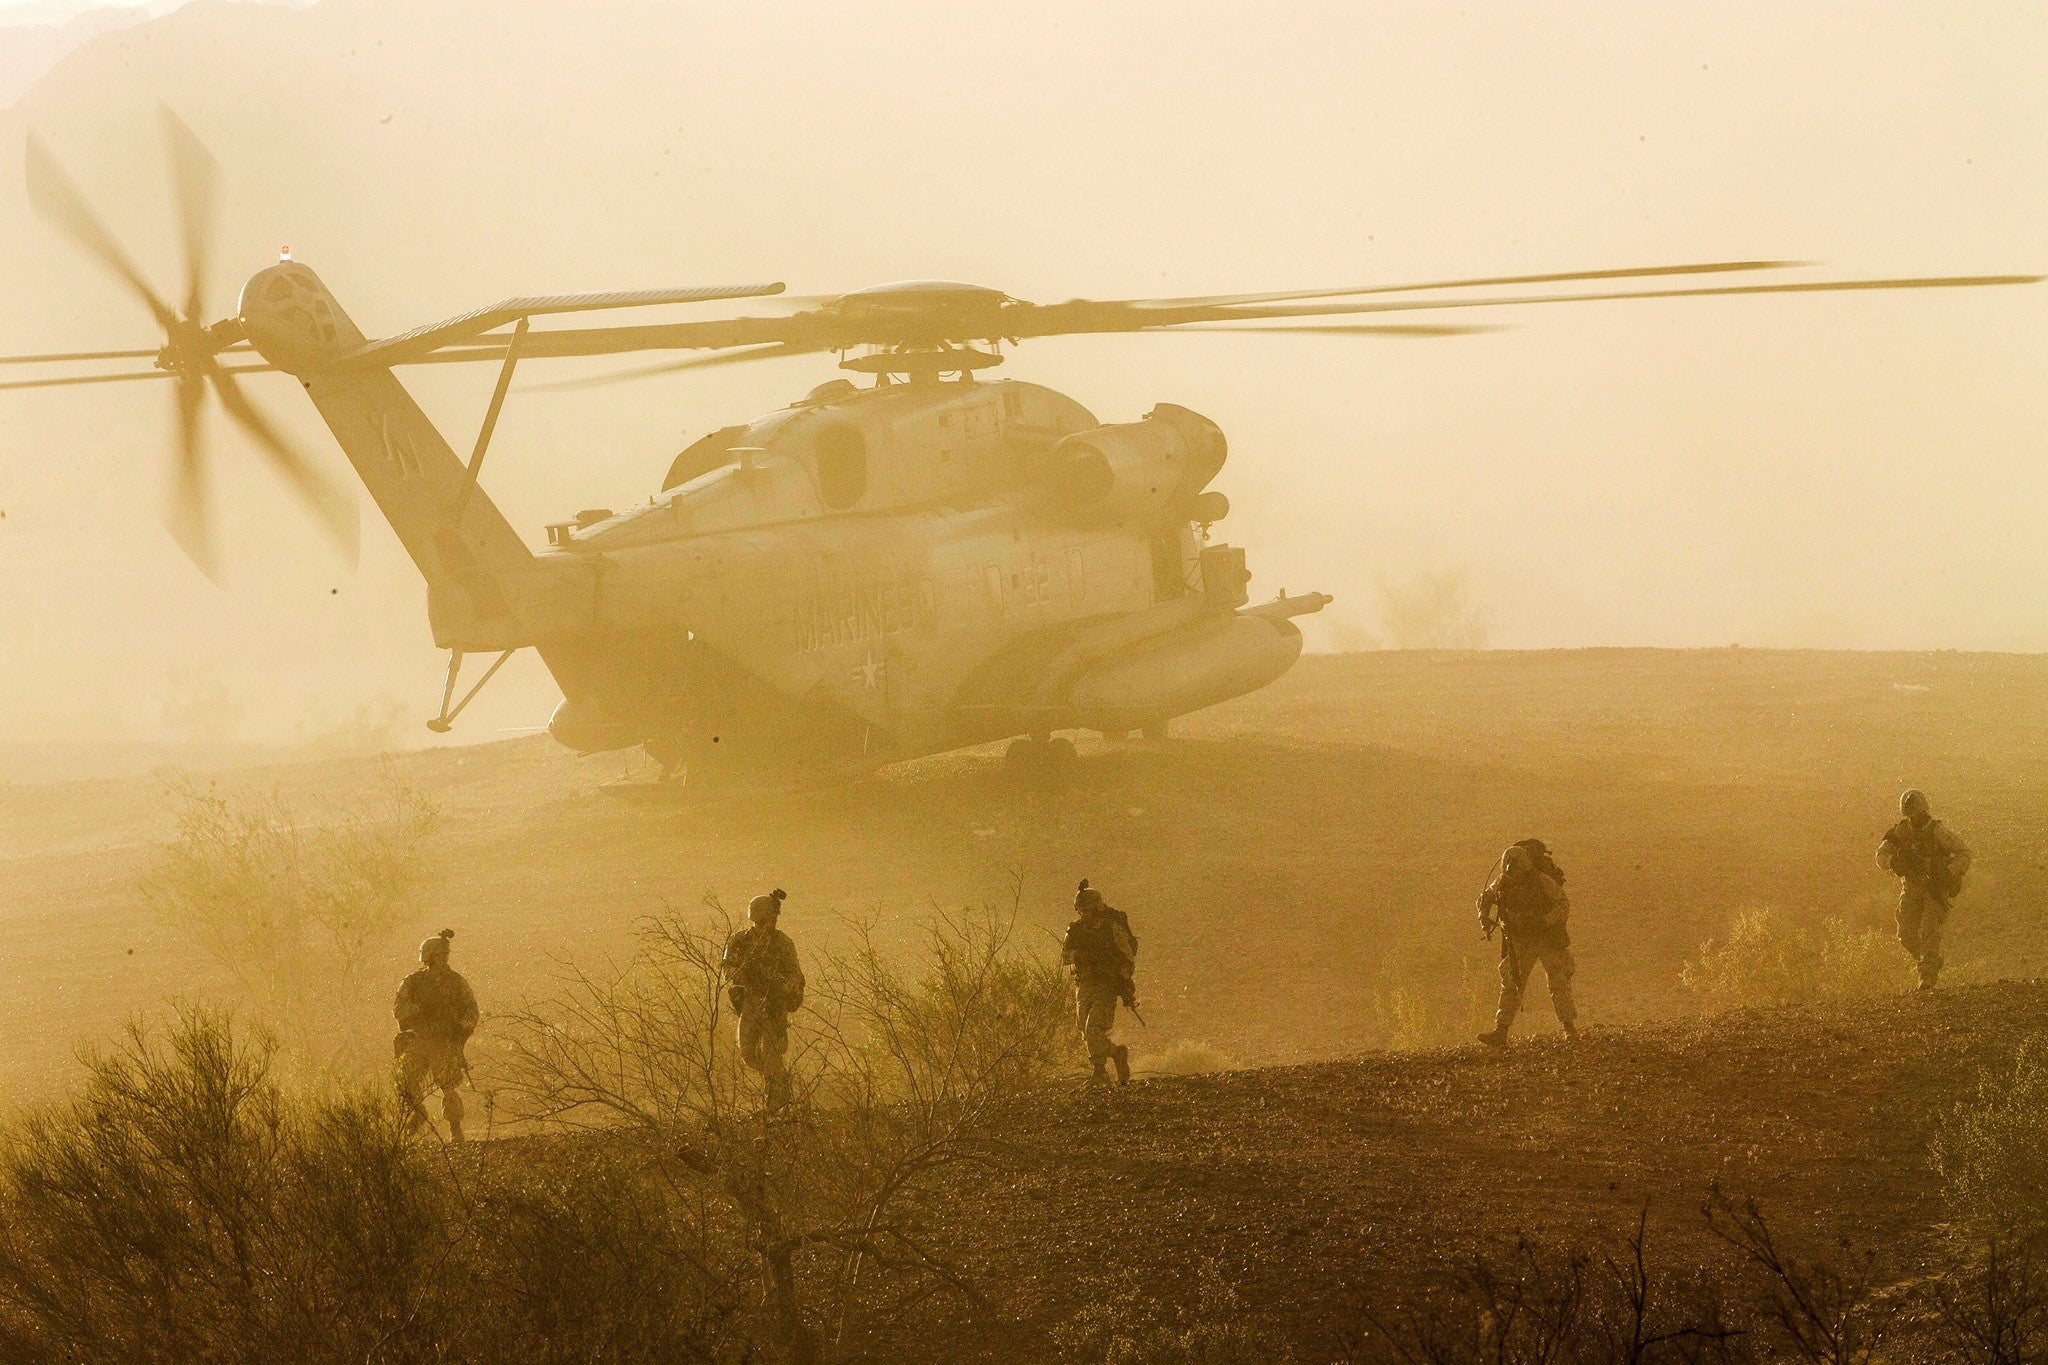 US Marines leaving a Super Stallion helicopter looks like a movie scene